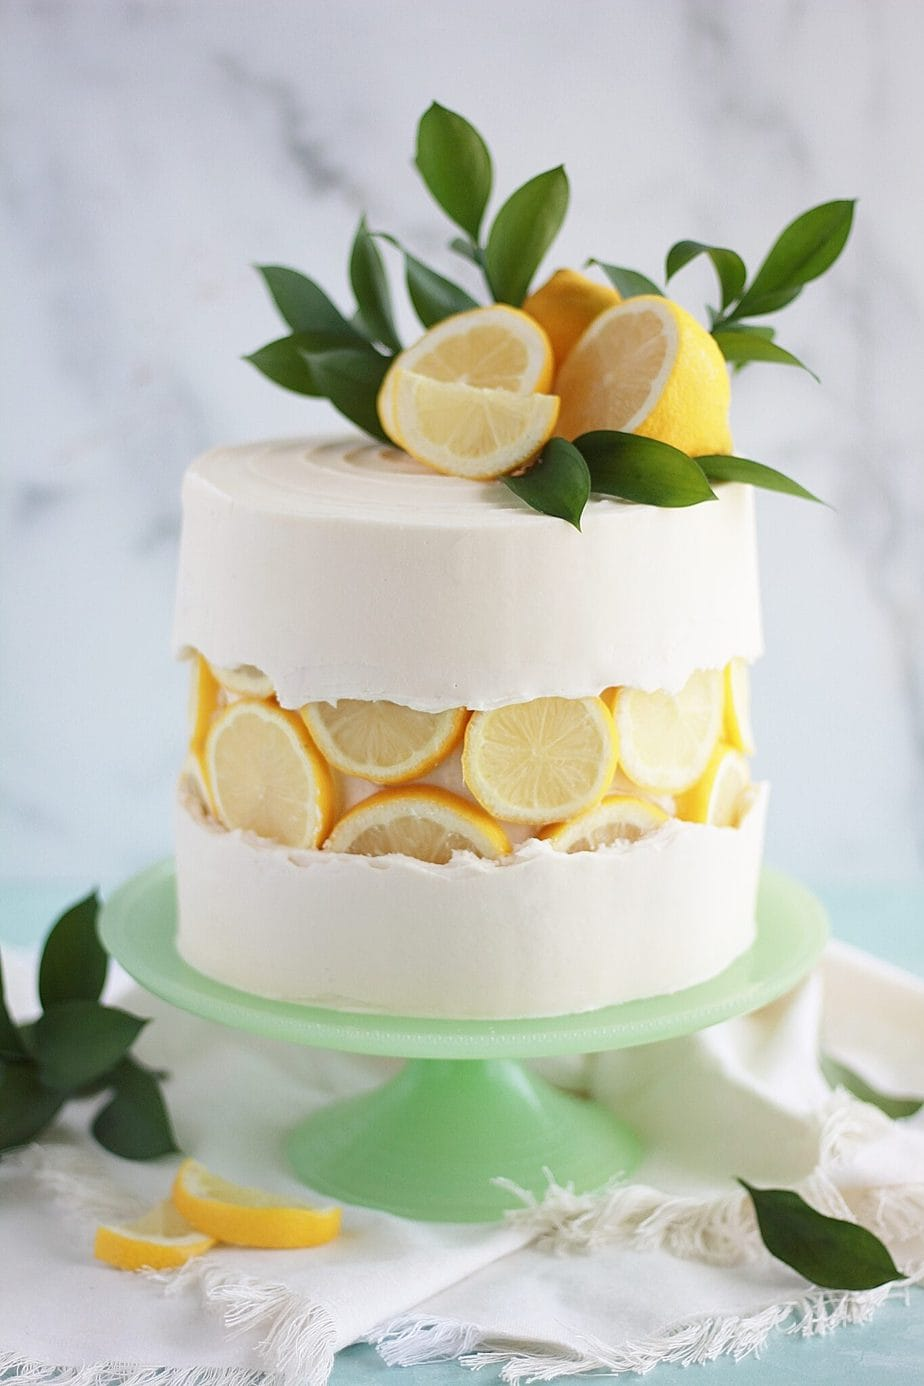 a white wedding cake with a fresh lemon fault line, topped with lemons too and some greenery for a tropical or just summer wedding